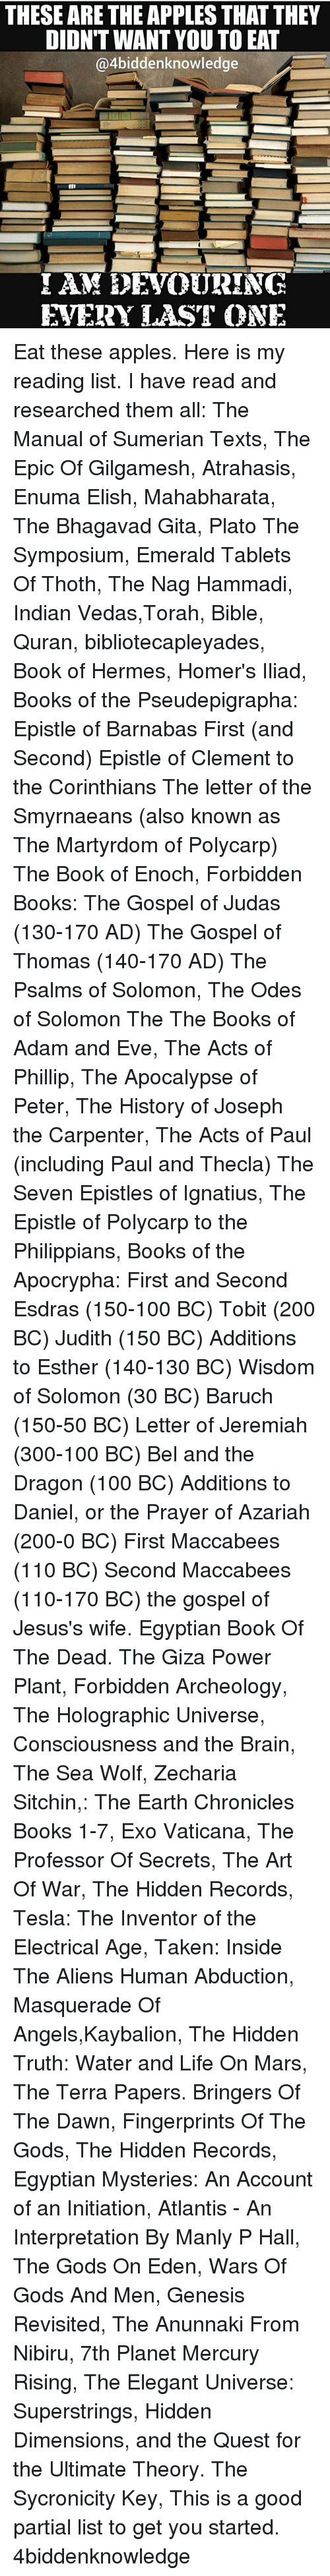 initiation: THESE ARE THE APPLES THAT THEY  DIDN'T WANT YOU TO EAT  @4biddenknowledge  EVERY LAST ONE Eat these apples. Here is my reading list. I have read and researched them all: The Manual of Sumerian Texts, The Epic Of Gilgamesh, Atrahasis, Enuma Elish, Mahabharata, The Bhagavad Gita, Plato The Symposium, Emerald Tablets Of Thoth, The Nag Hammadi, Indian Vedas,Torah, Bible, Quran, bibliotecapleyades, Book of Hermes, Homer's Iliad, Books of the Pseudepigrapha: Epistle of Barnabas First (and Second) Epistle of Clement to the Corinthians The letter of the Smyrnaeans (also known as The Martyrdom of Polycarp) The Book of Enoch, Forbidden Books: The Gospel of Judas (130-170 AD) The Gospel of Thomas (140-170 AD) The Psalms of Solomon, The Odes of Solomon The The Books of Adam and Eve, The Acts of Phillip, The Apocalypse of Peter, The History of Joseph the Carpenter, The Acts of Paul (including Paul and Thecla) The Seven Epistles of Ignatius, The Epistle of Polycarp to the Philippians, Books of the Apocrypha: First and Second Esdras (150-100 BC) Tobit (200 BC) Judith (150 BC) Additions to Esther (140-130 BC) Wisdom of Solomon (30 BC) Baruch (150-50 BC) Letter of Jeremiah (300-100 BC) Bel and the Dragon (100 BC) Additions to Daniel, or the Prayer of Azariah (200-0 BC) First Maccabees (110 BC) Second Maccabees (110-170 BC) the gospel of Jesus's wife. Egyptian Book Of The Dead. The Giza Power Plant, Forbidden Archeology, The Holographic Universe, Consciousness and the Brain, The Sea Wolf, Zecharia Sitchin,: The Earth Chronicles Books 1-7, Exo Vaticana, The Professor Of Secrets, The Art Of War, The Hidden Records, Tesla: The Inventor of the Electrical Age, Taken: Inside The Aliens Human Abduction, Masquerade Of Angels,Kaybalion, The Hidden Truth: Water and Life On Mars, The Terra Papers. Bringers Of The Dawn, Fingerprints Of The Gods, The Hidden Records, Egyptian Mysteries: An Account of an Initiation, Atlantis - An Interpretation By Manly P Hall, The Gods On Eden, Wars Of Gods And Men, Genesis Revisited, The Anunnaki From Nibiru, 7th Planet Mercury Rising, The Elegant Universe: Superstrings, Hidden Dimensions, and the Quest for the Ultimate Theory. The Sycronicity Key, This is a good partial list to get you started. 4biddenknowledge